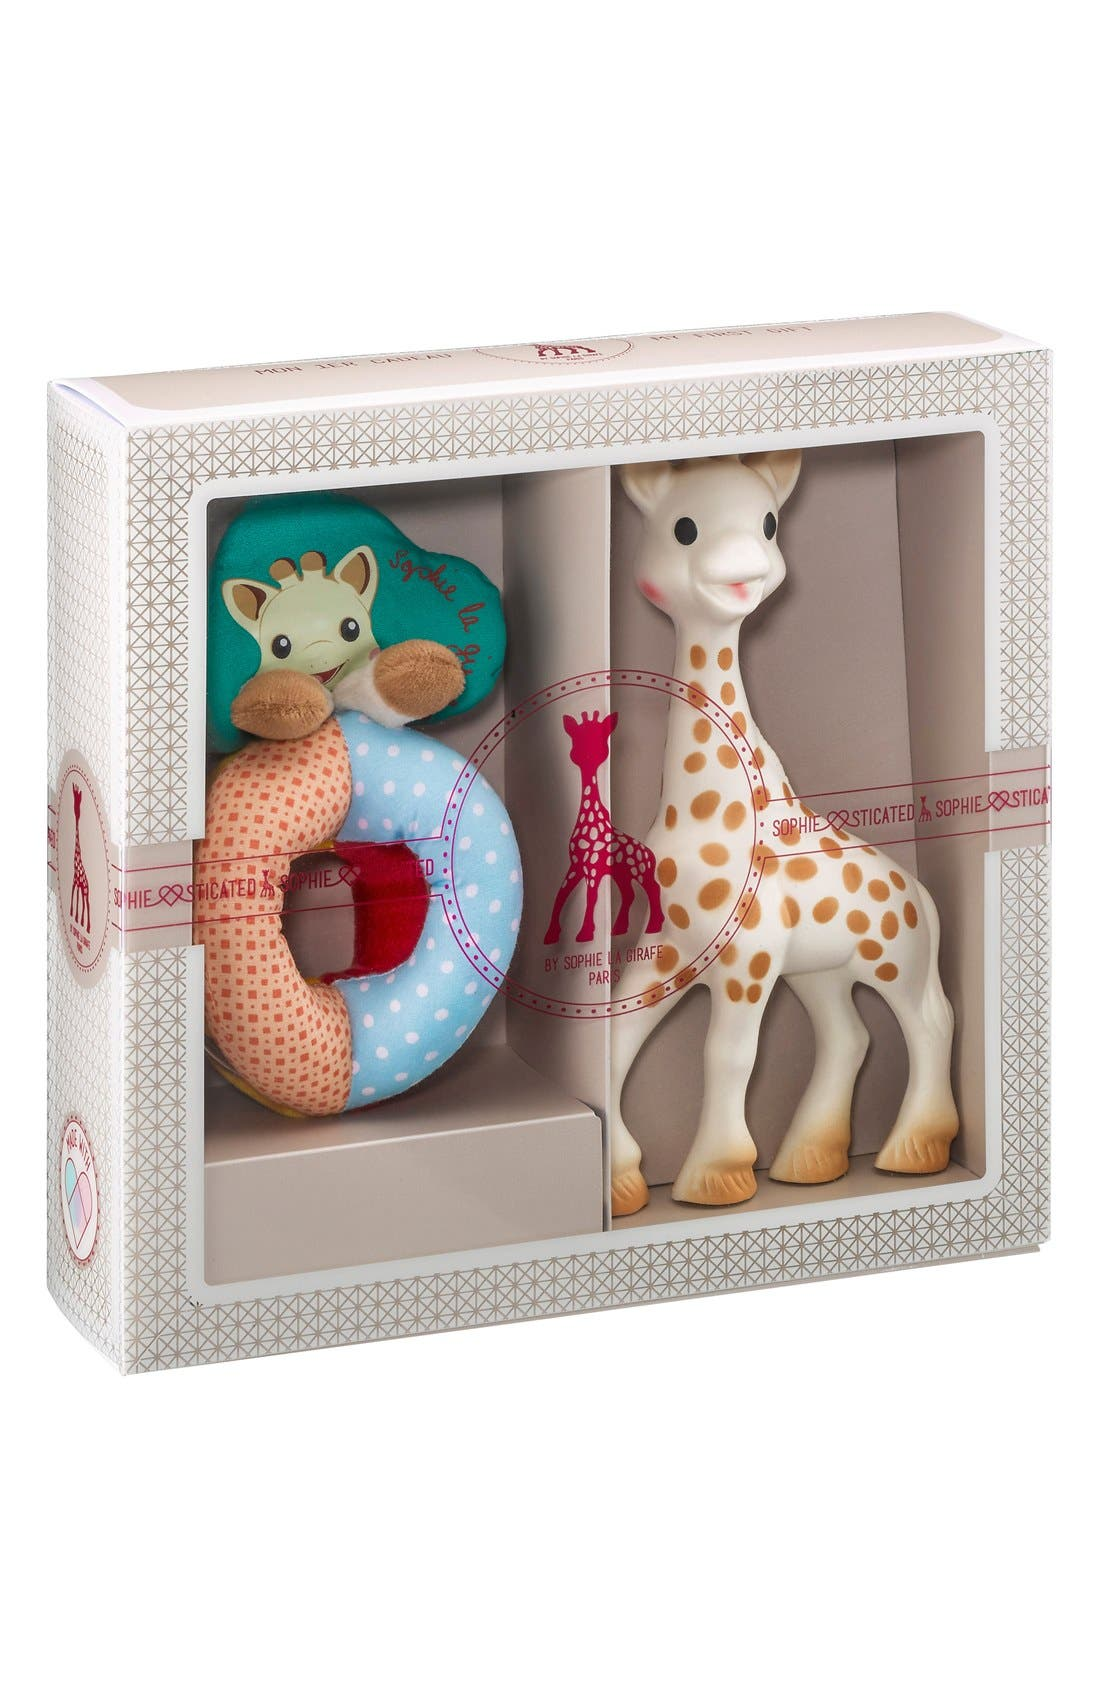 Alternate Image 1 Selected - Sophie la Girafe 'Sophiesticated' Rattle & Teething Toy